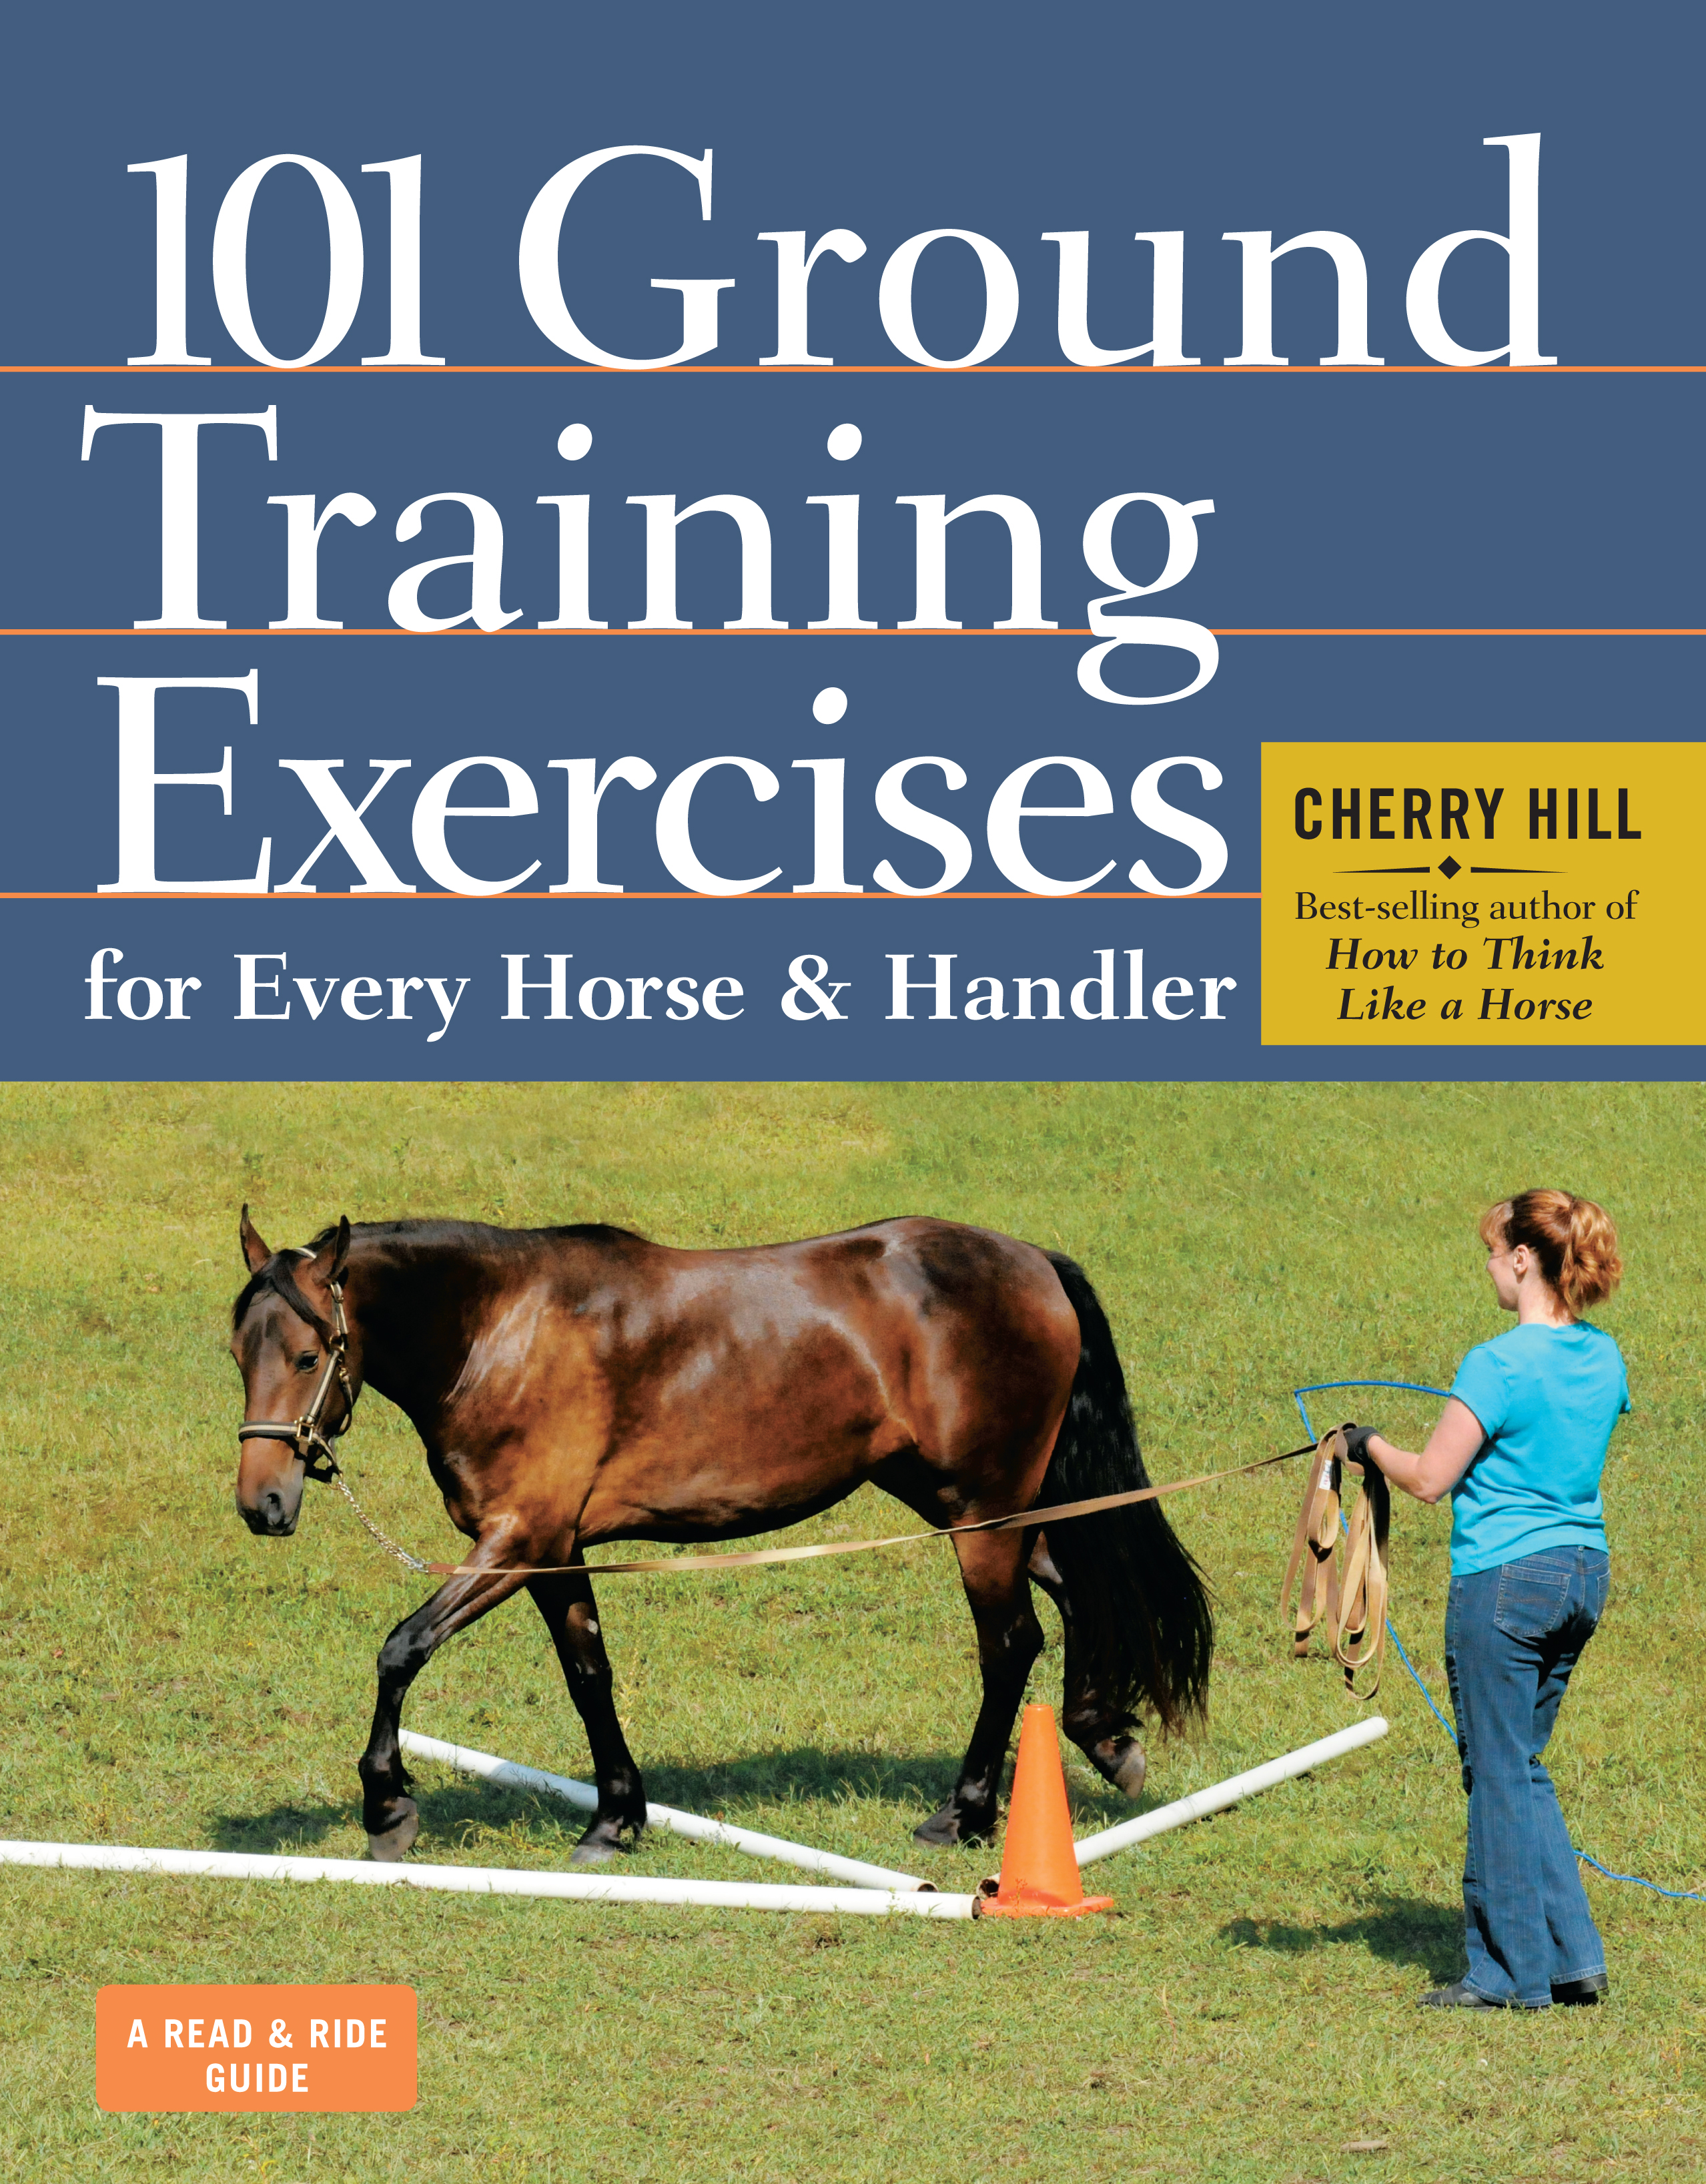 101 Ground Training Exercises for Every Horse & Handler  - Cherry Hill